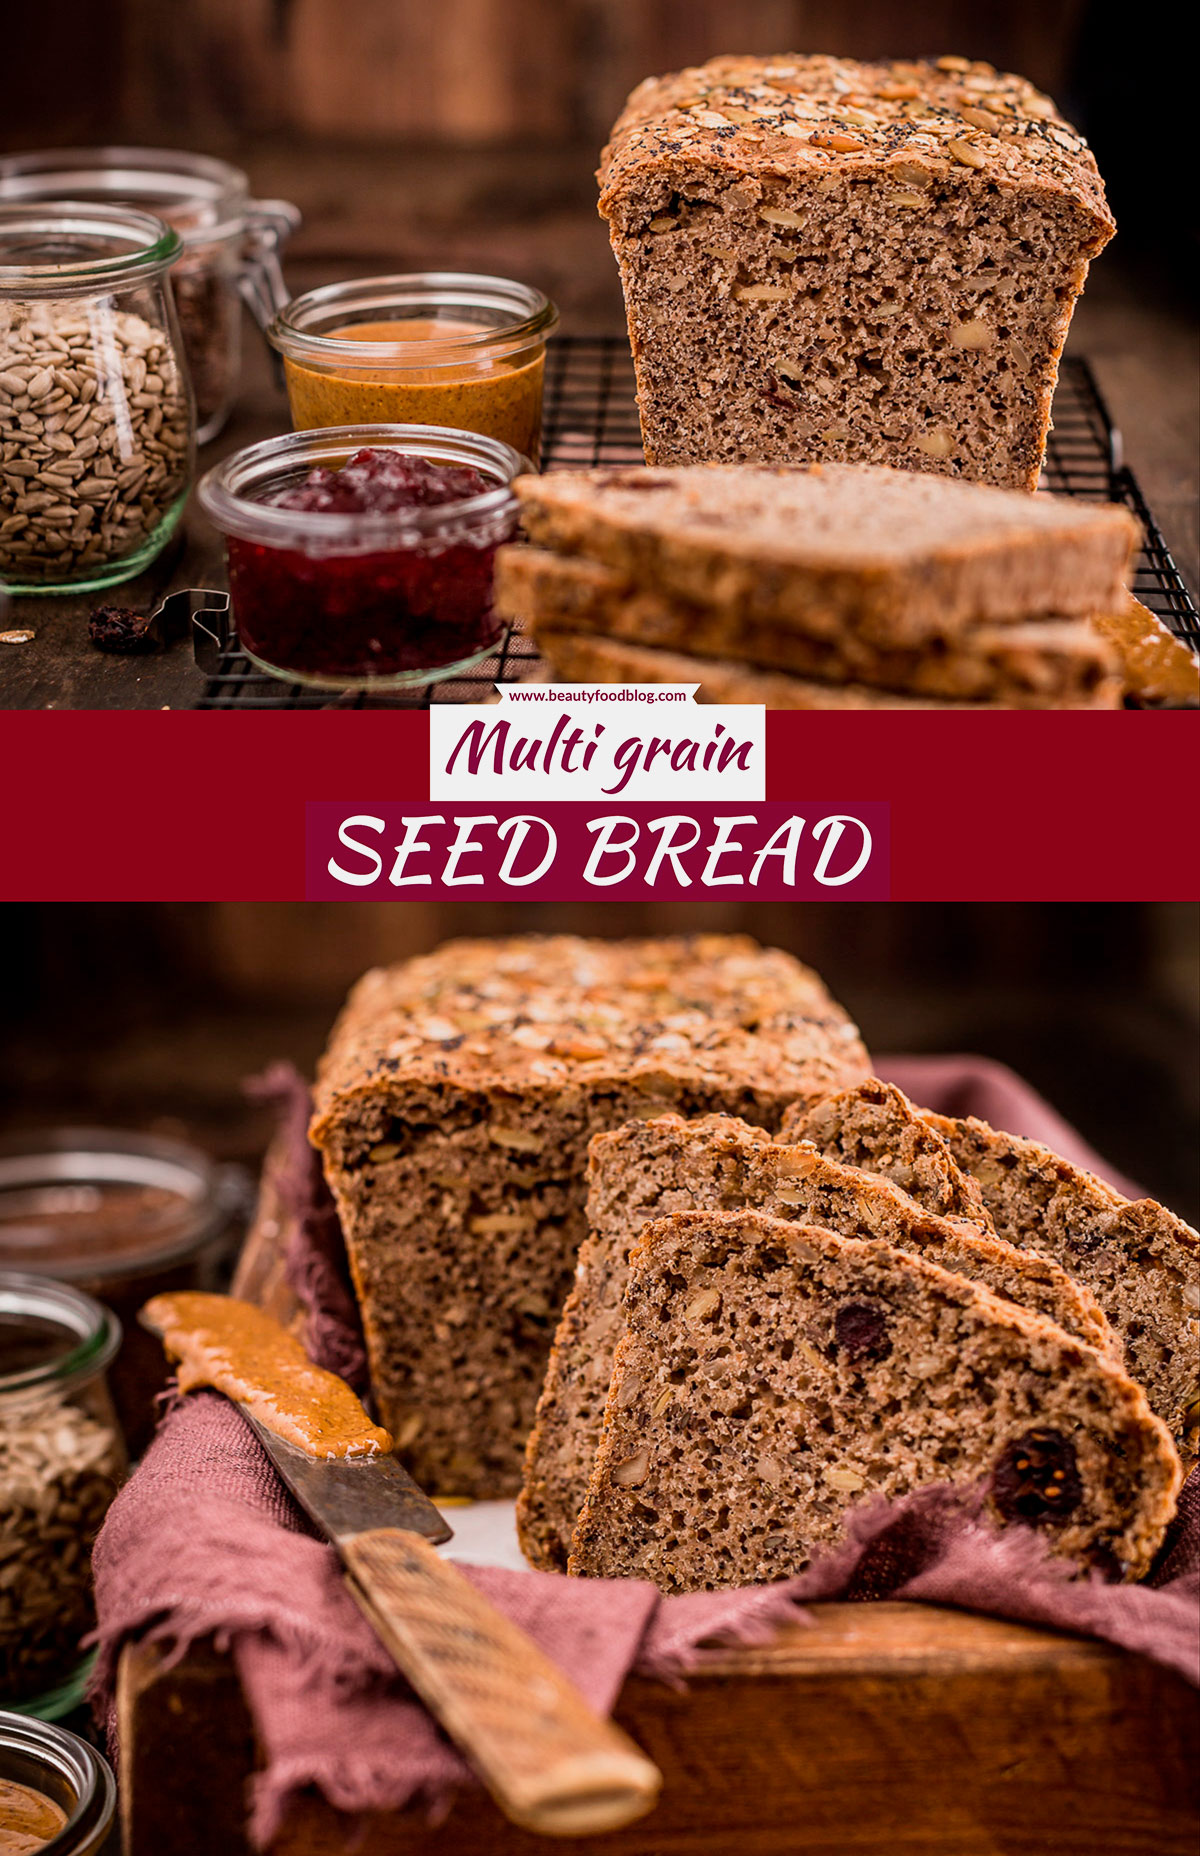 HEALTHY #breakfast multi cereal whole grain SEED BREAD with oats spelt buckwheat PANE INTEGRALE ai CEREALI e semi con avena farro grano saraceno PANE da #COLAZIONE